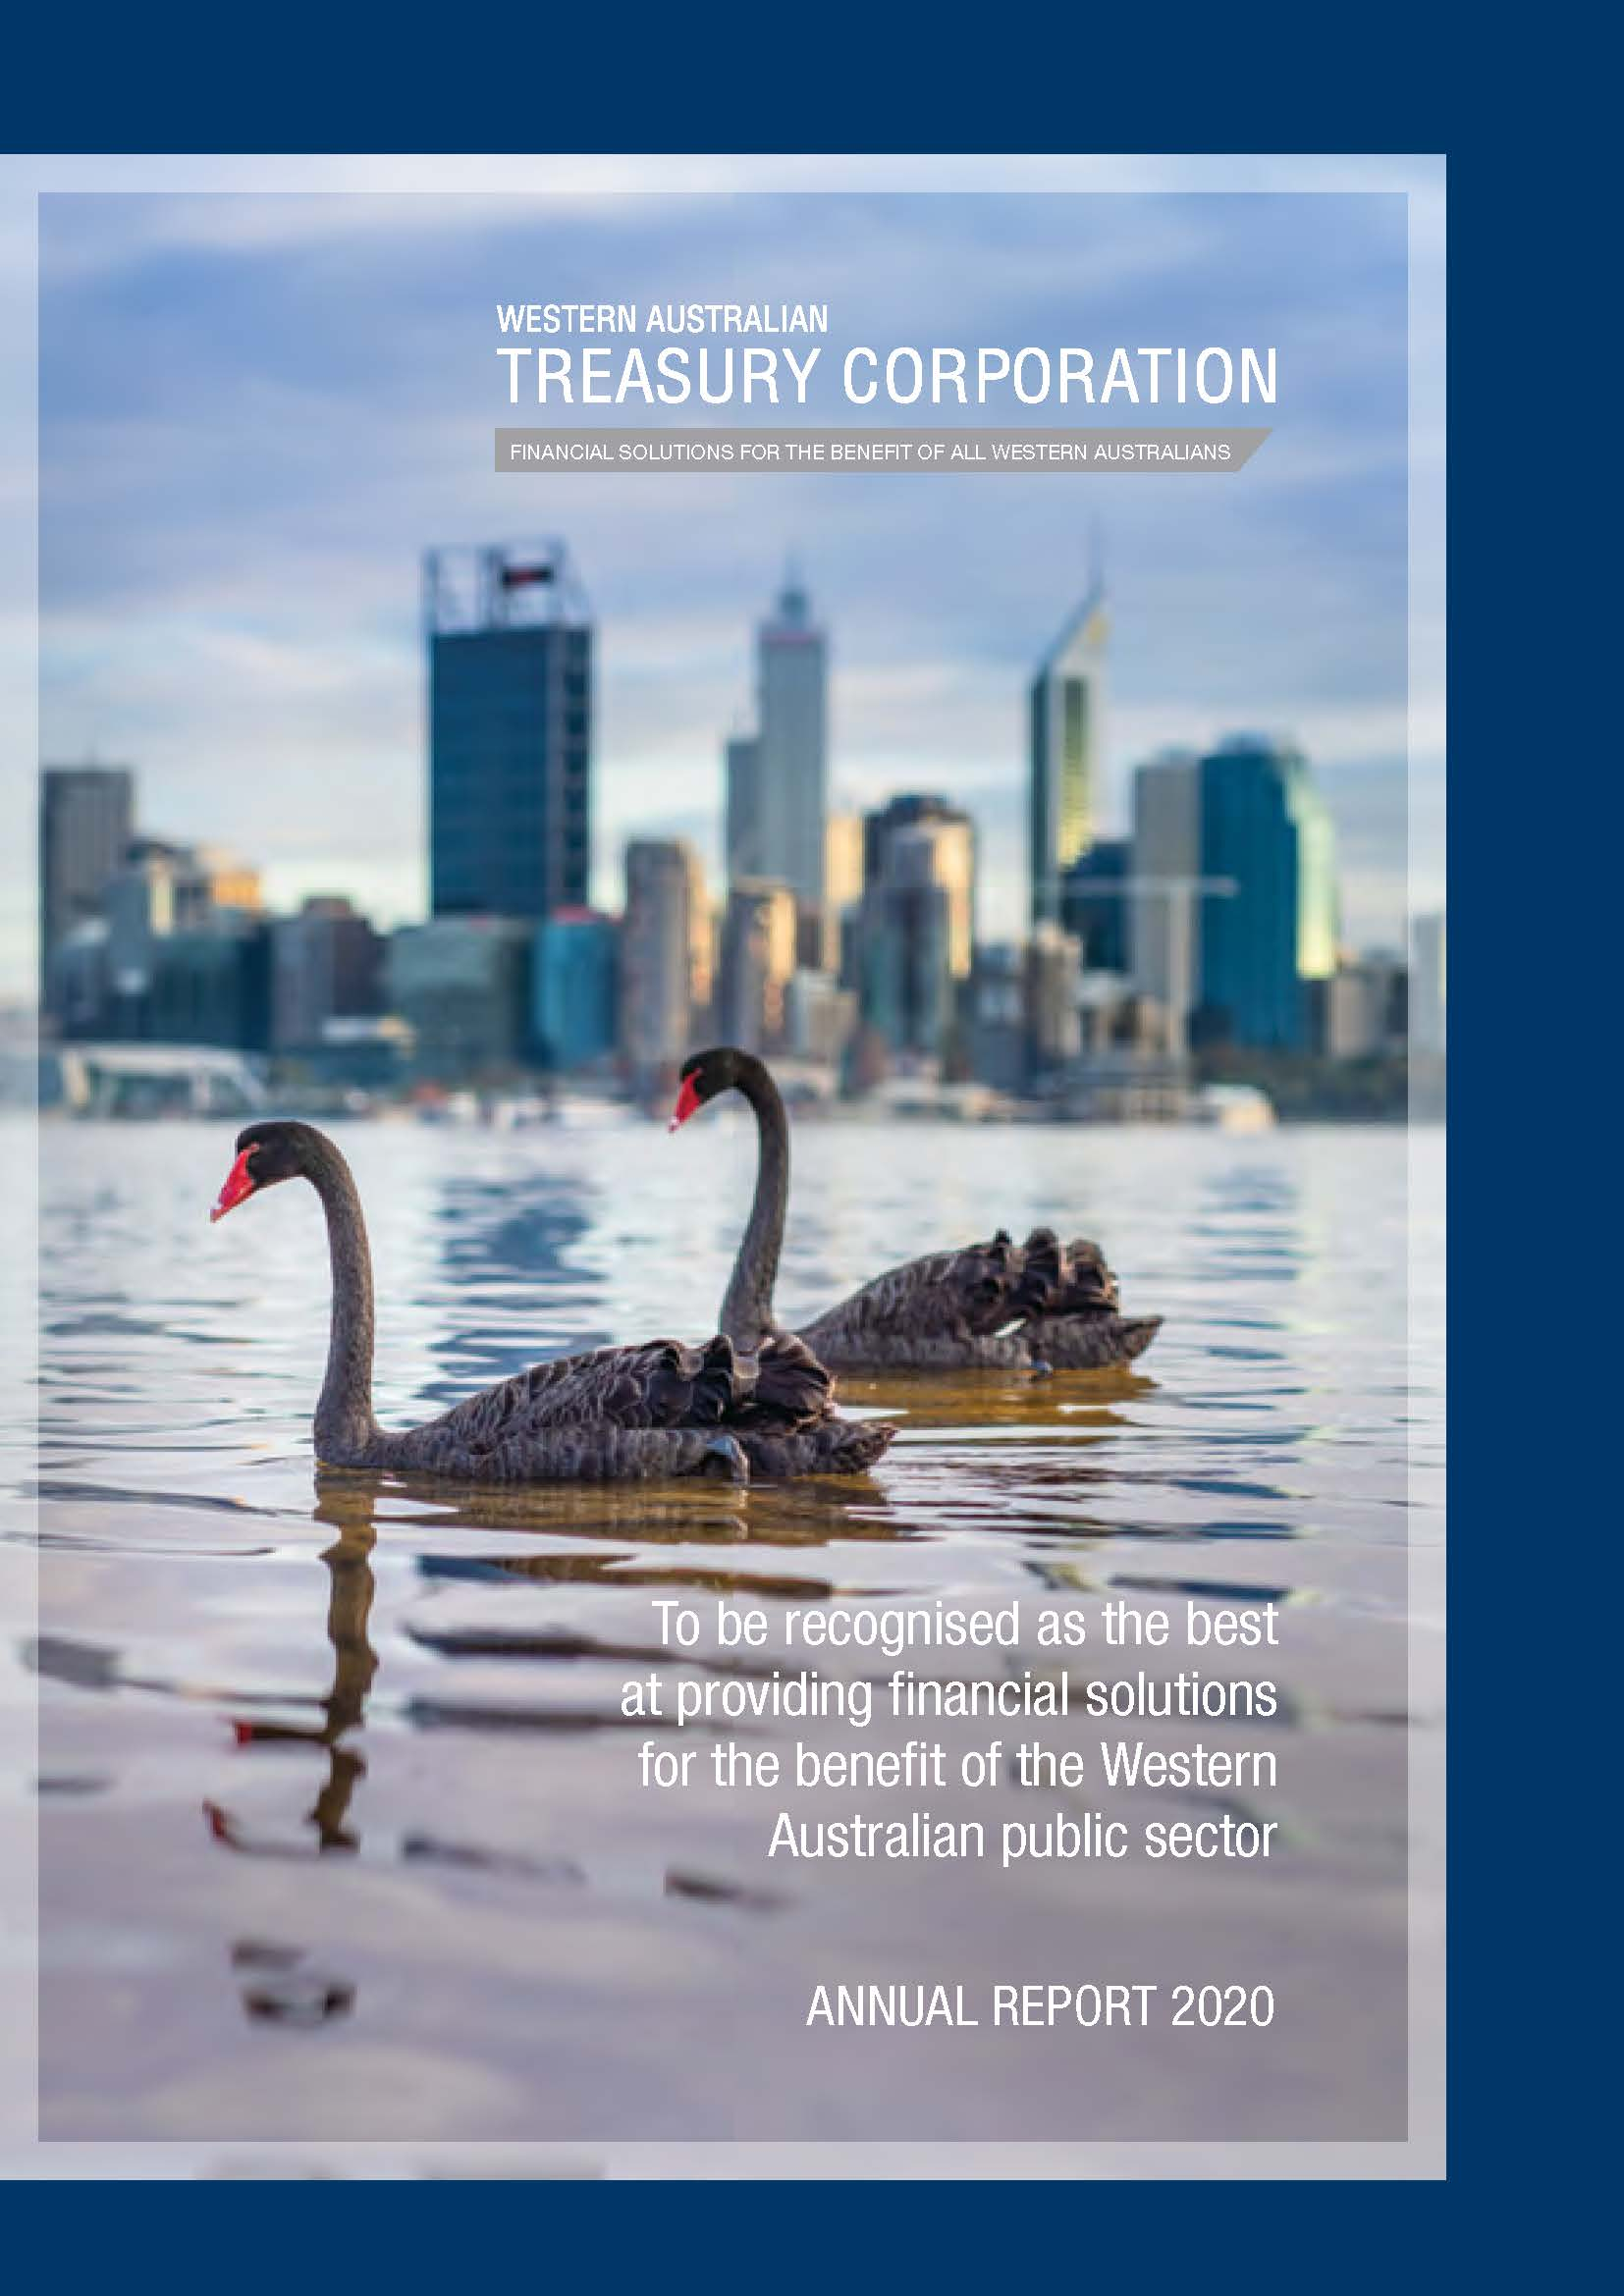 WATC 2020 Annual Report front cover